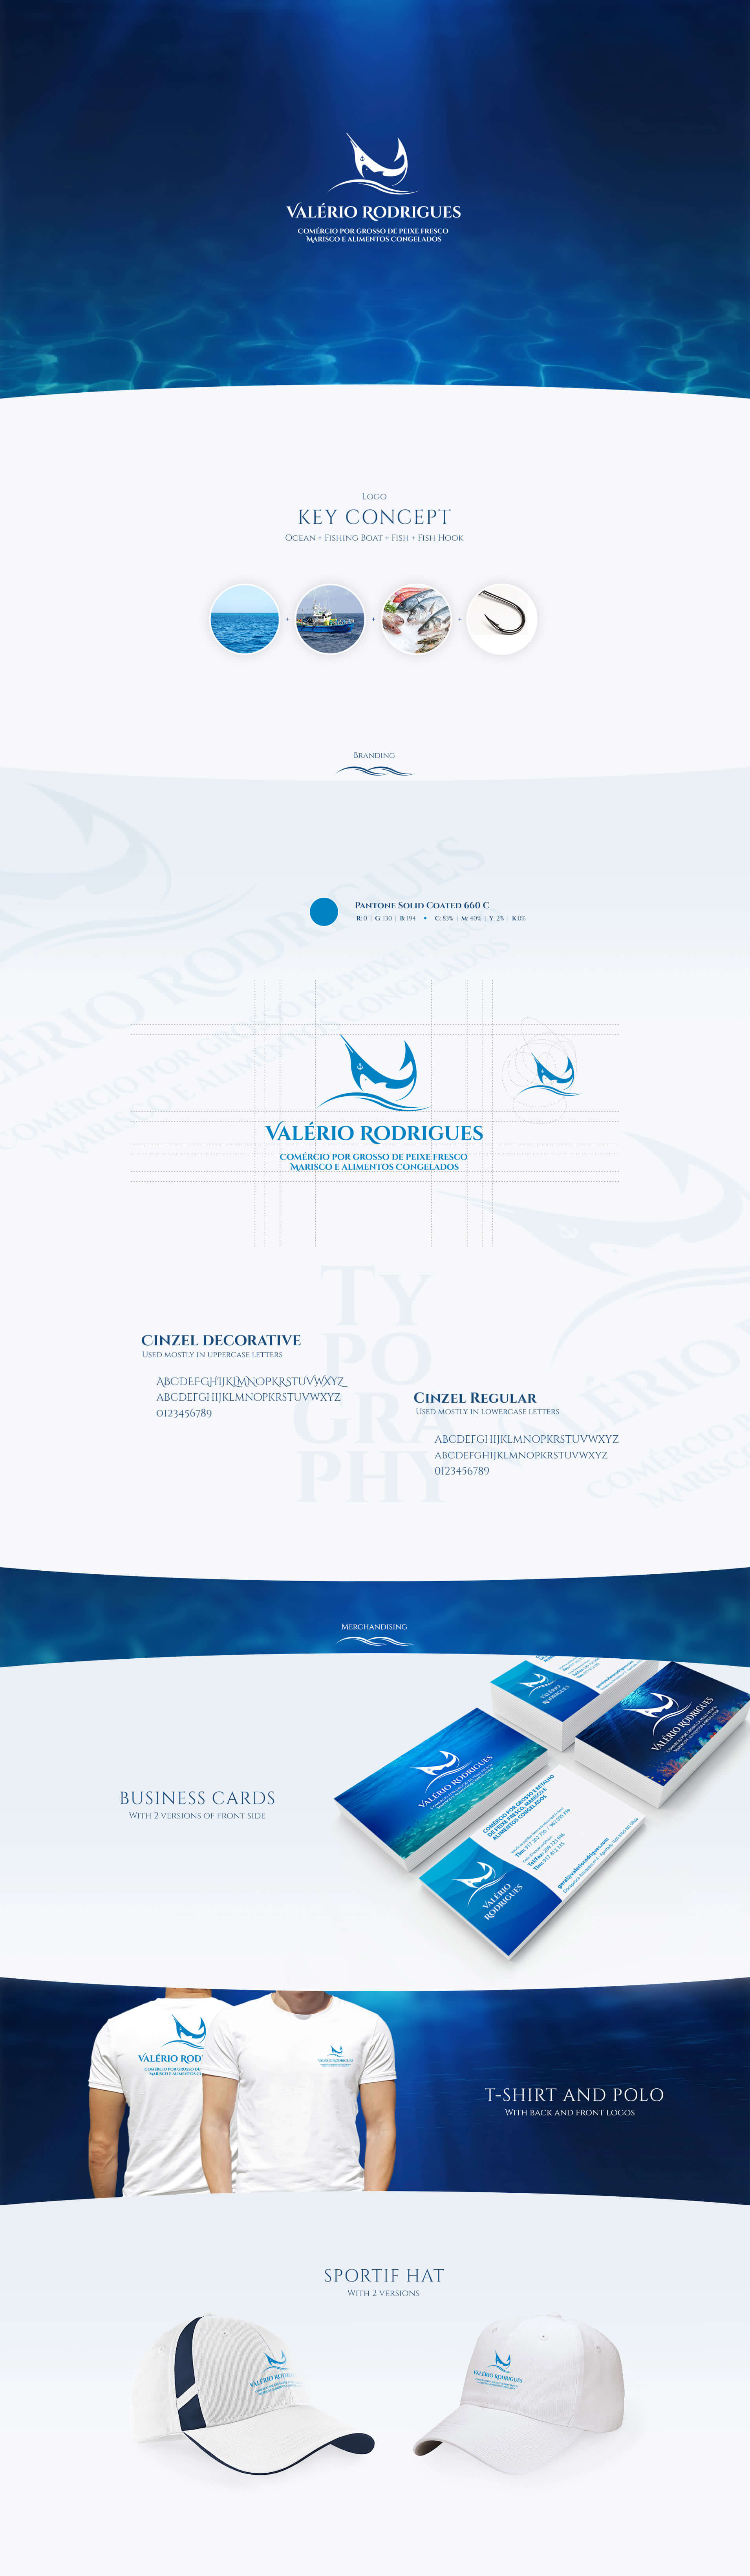 Valério Rodrigues - Fishmonger - Logo Design | Business Cards | Table Fish Presentation | Vinil Decoration | T-shirts | Hats